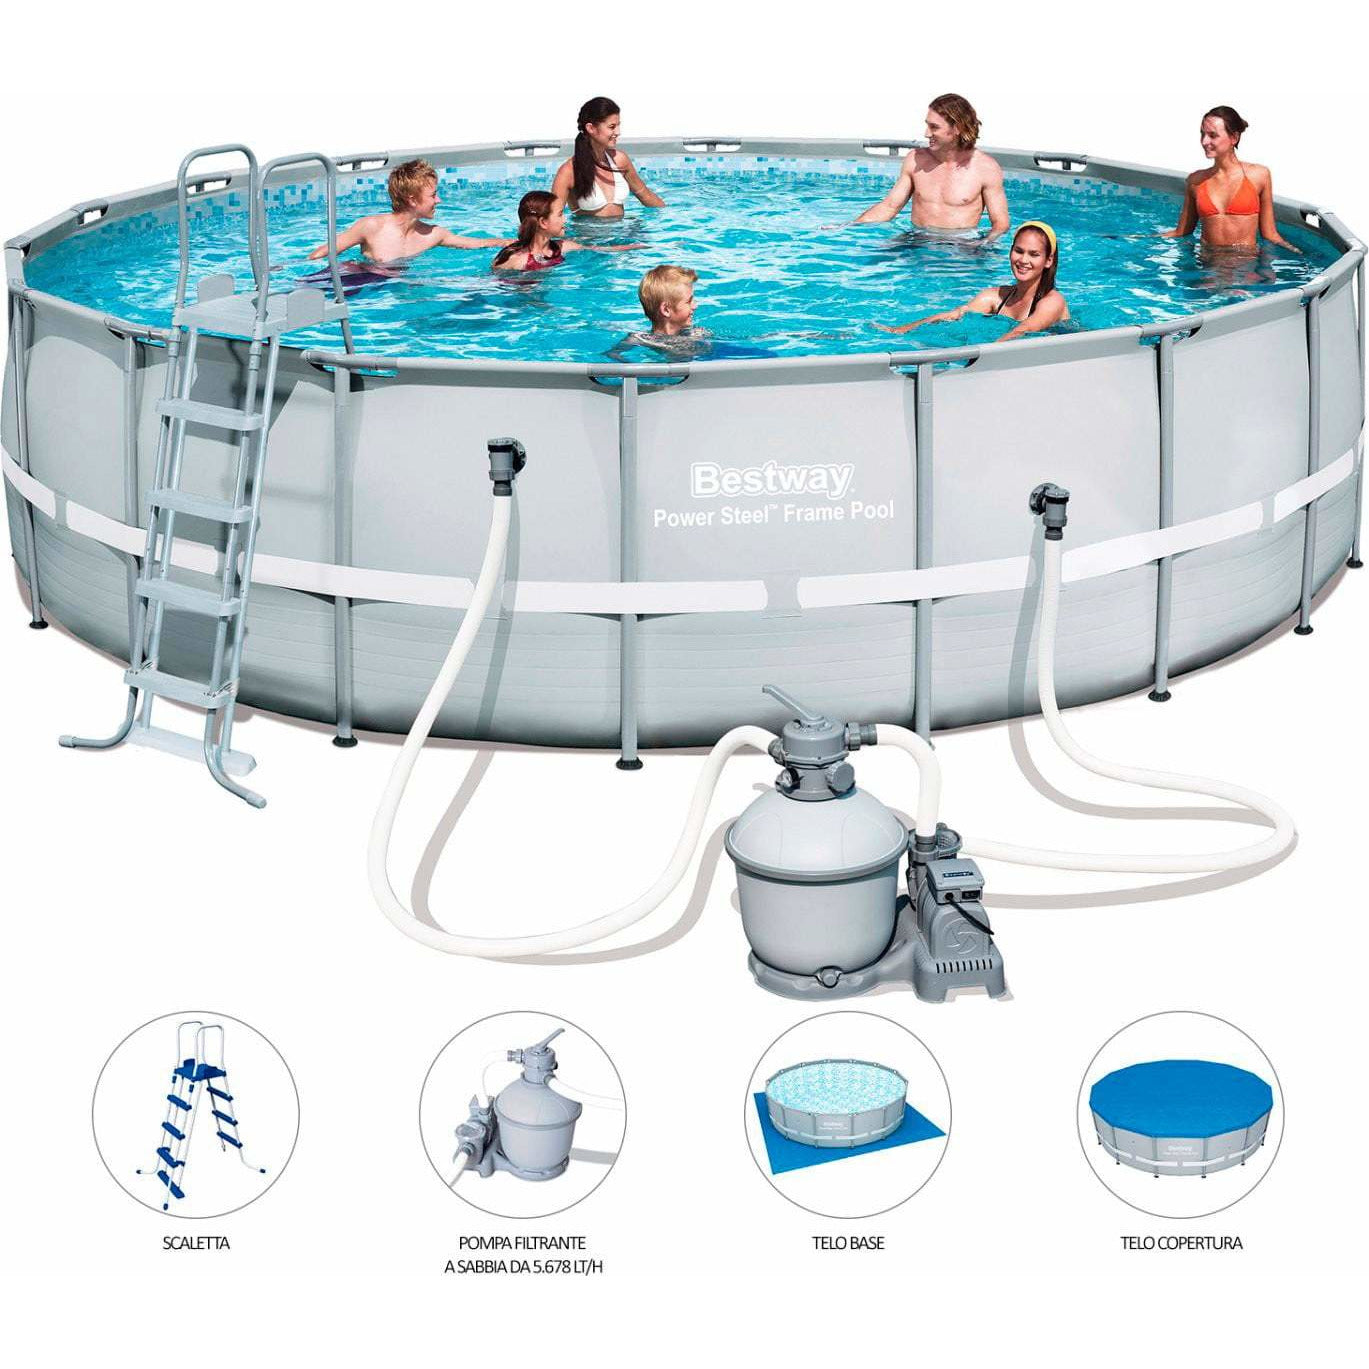 "Bestway 18' x 52""/5.49m x 1.32m Power Steel Frame Pool Set - rafplay"